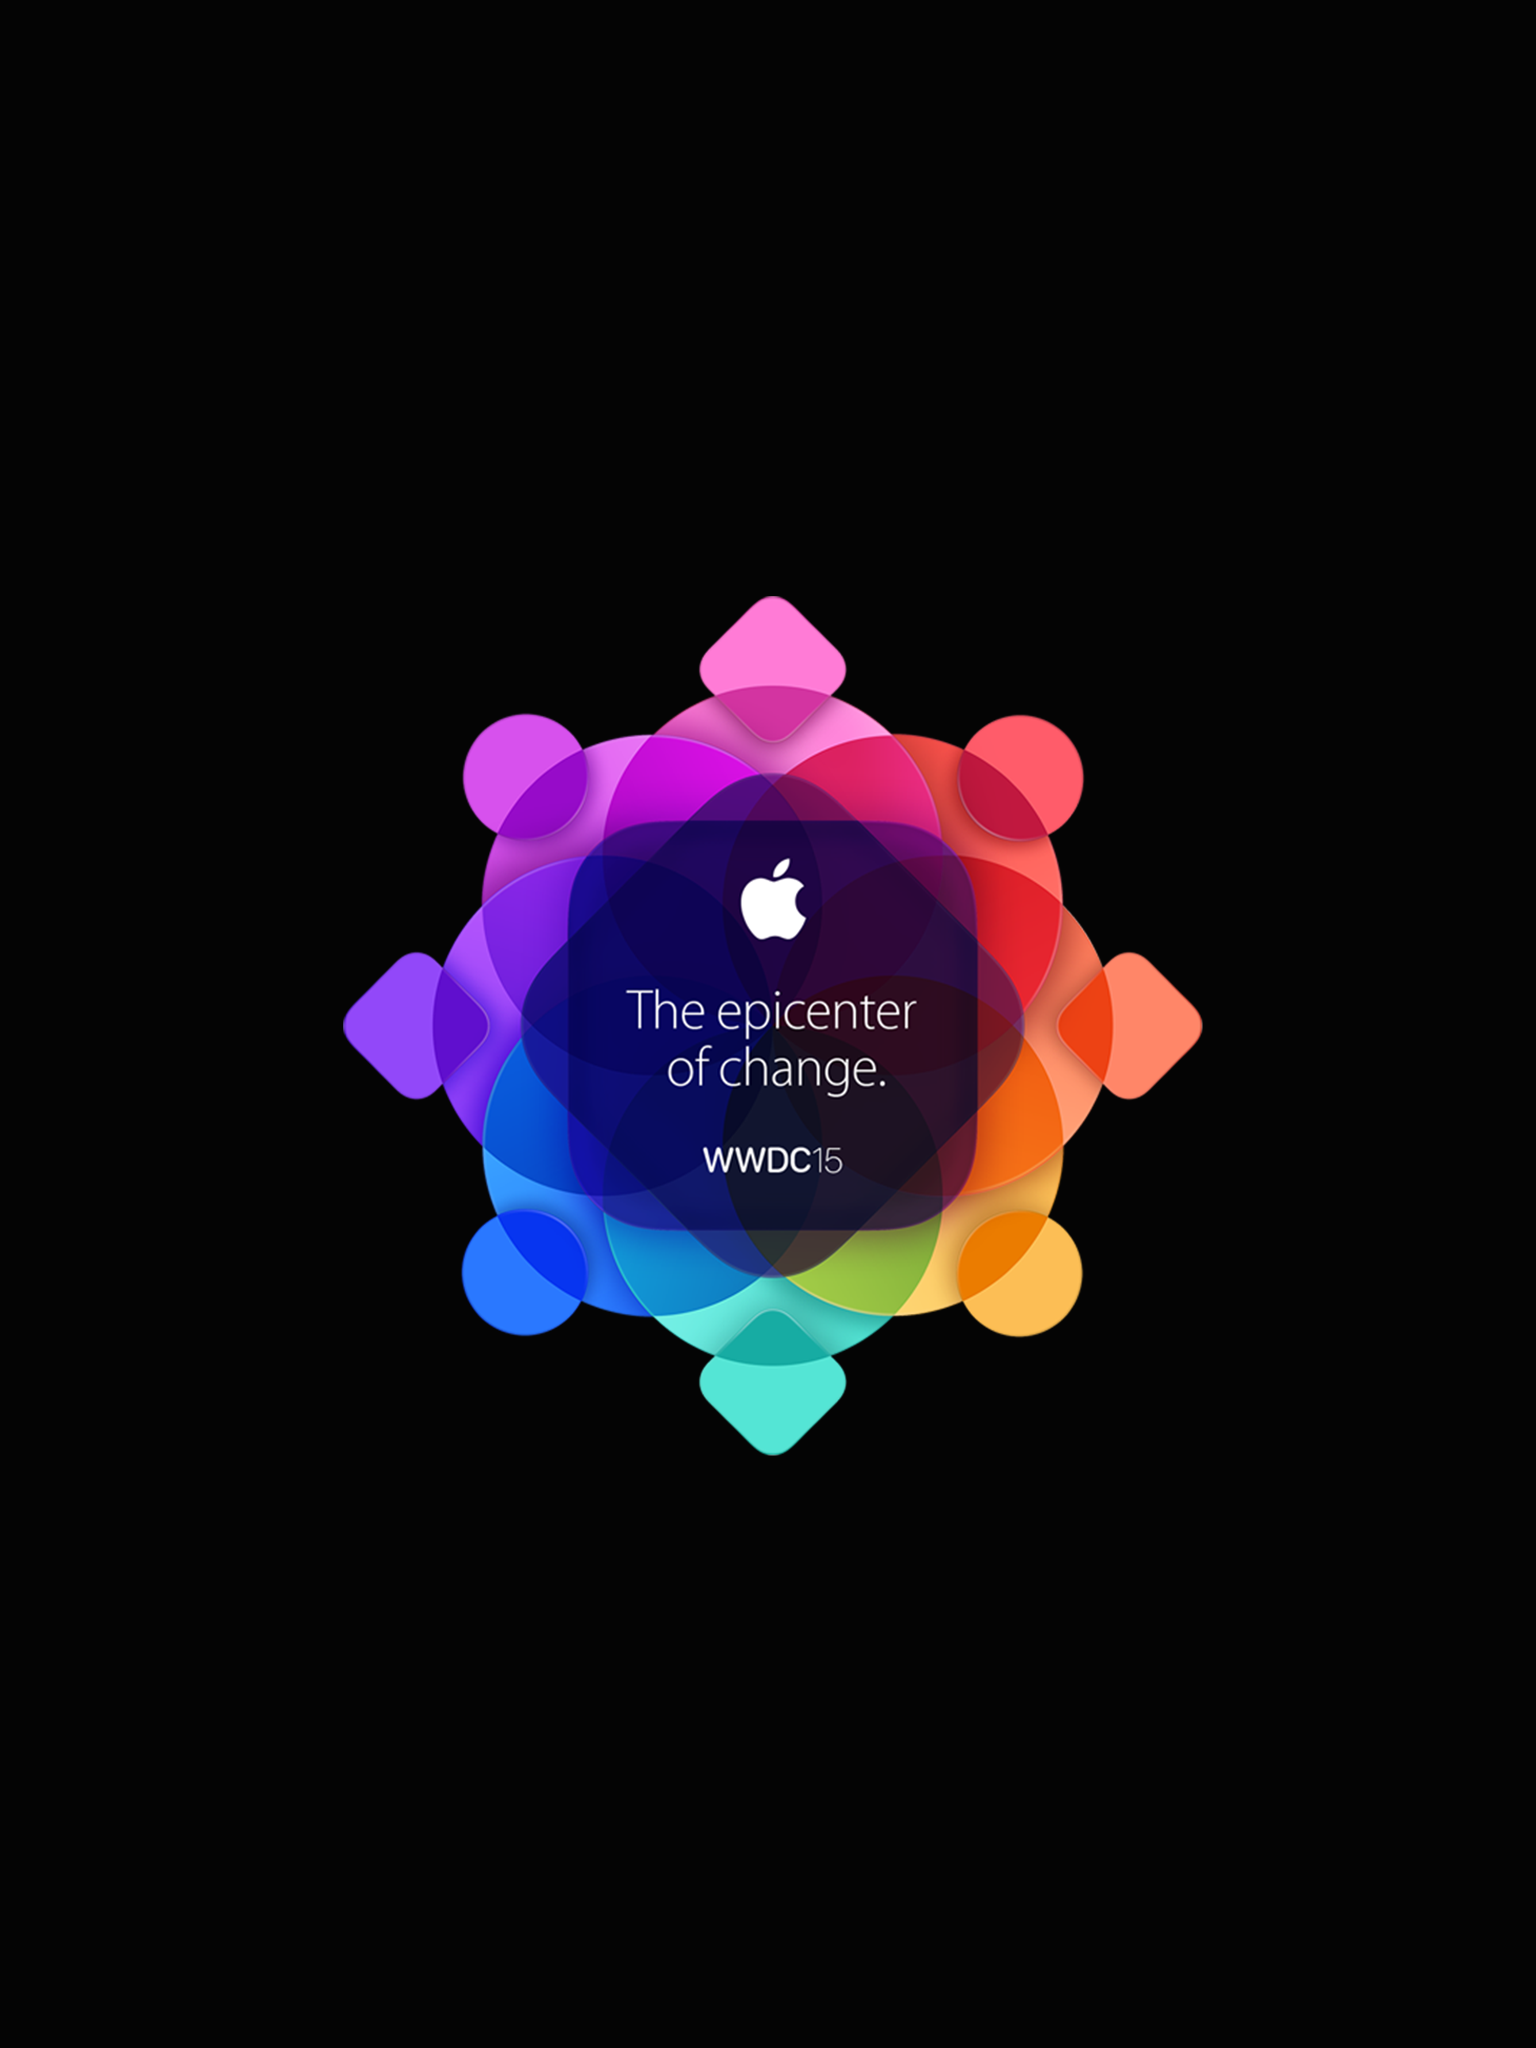 WWDC-2015-Wallpaper-for-iPad-Black-Edition